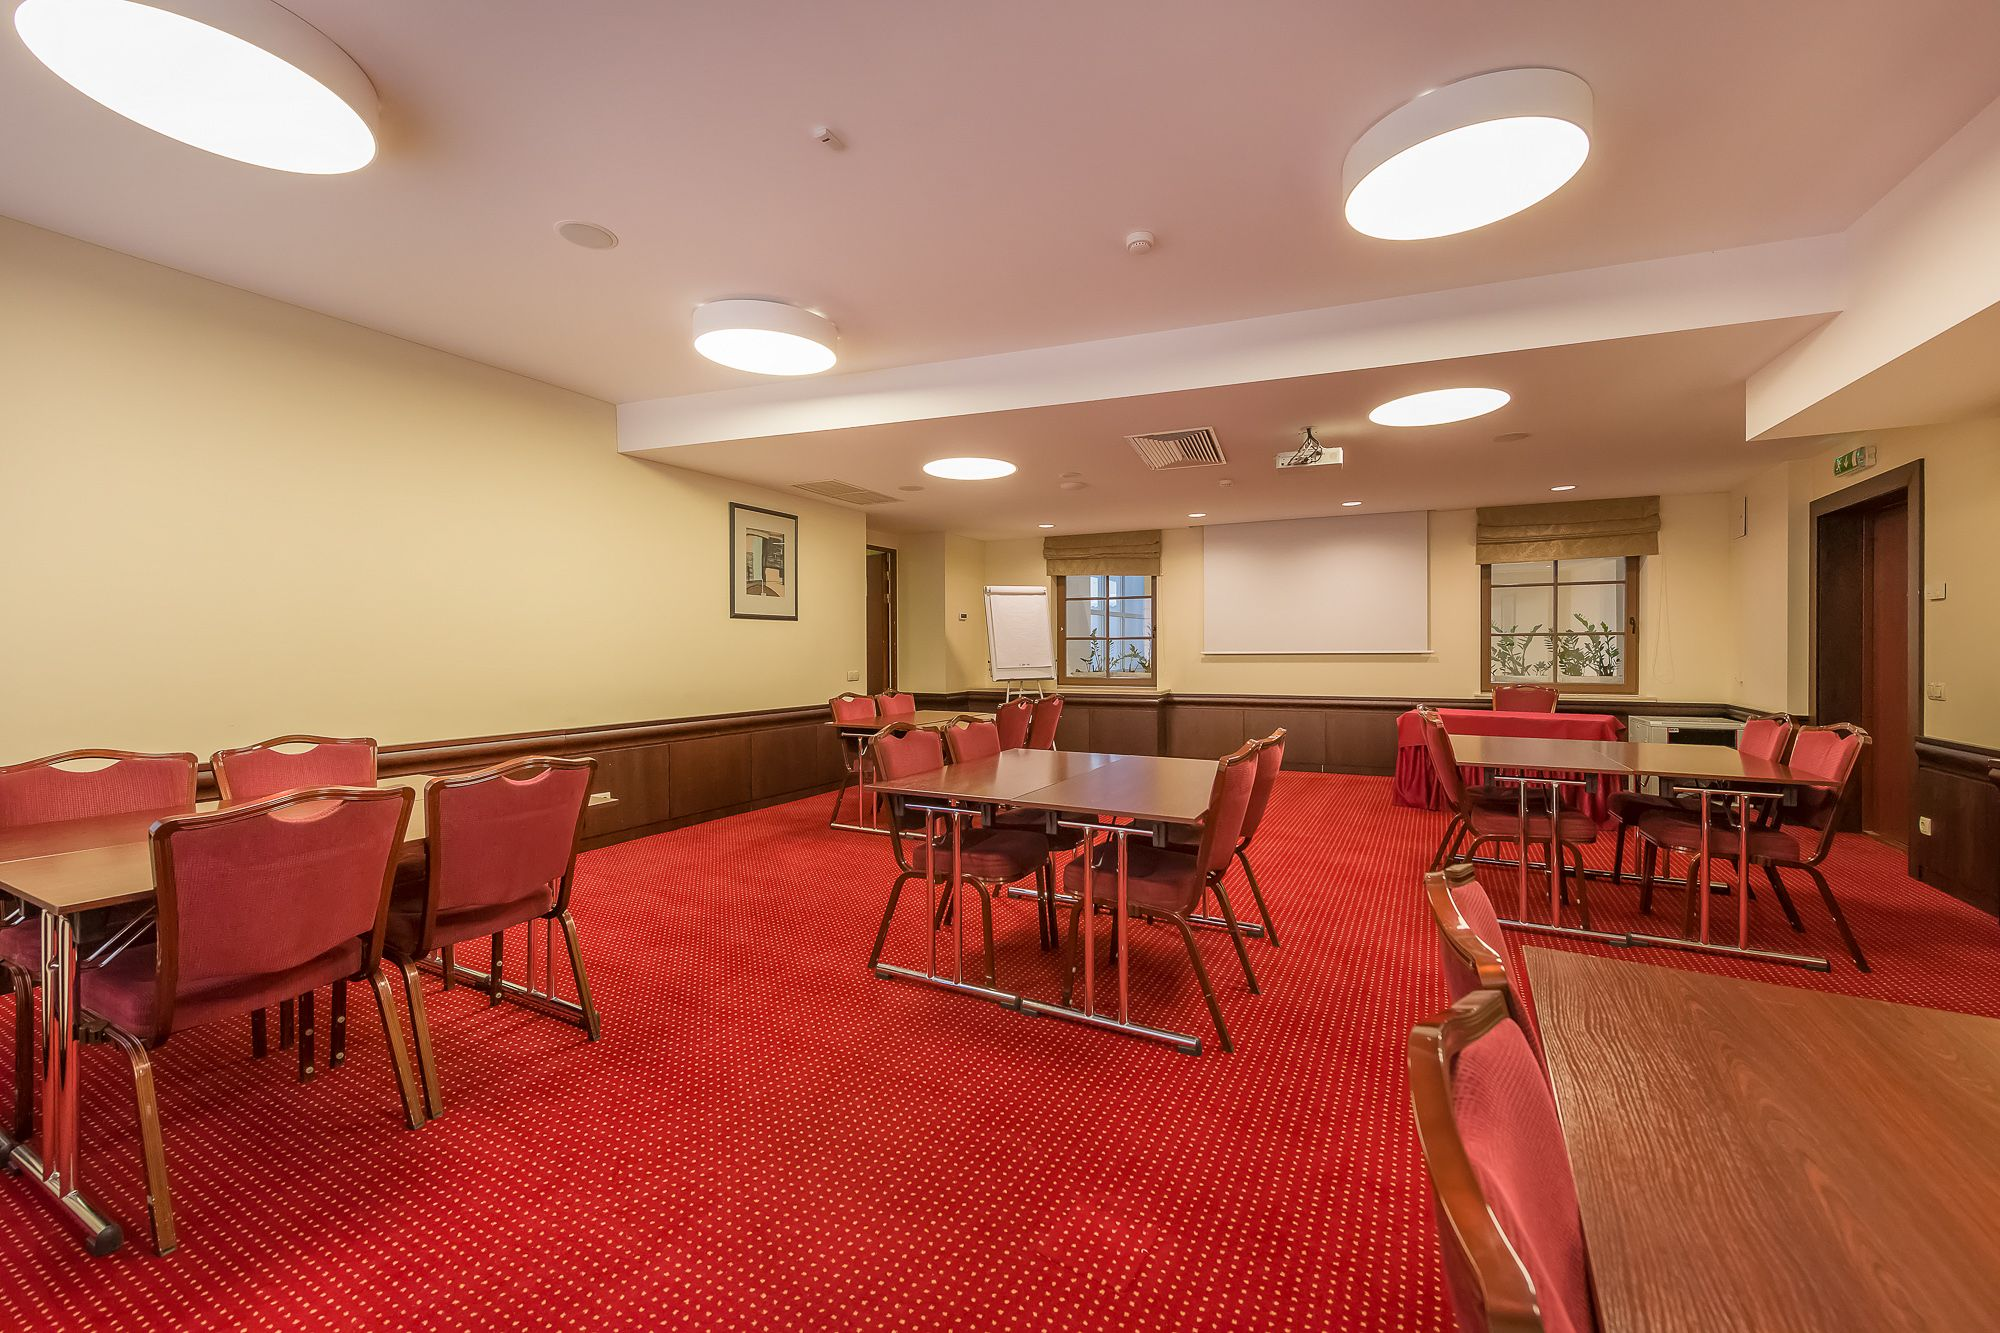 Artis Centrum Hotels Conference Room - Tosca